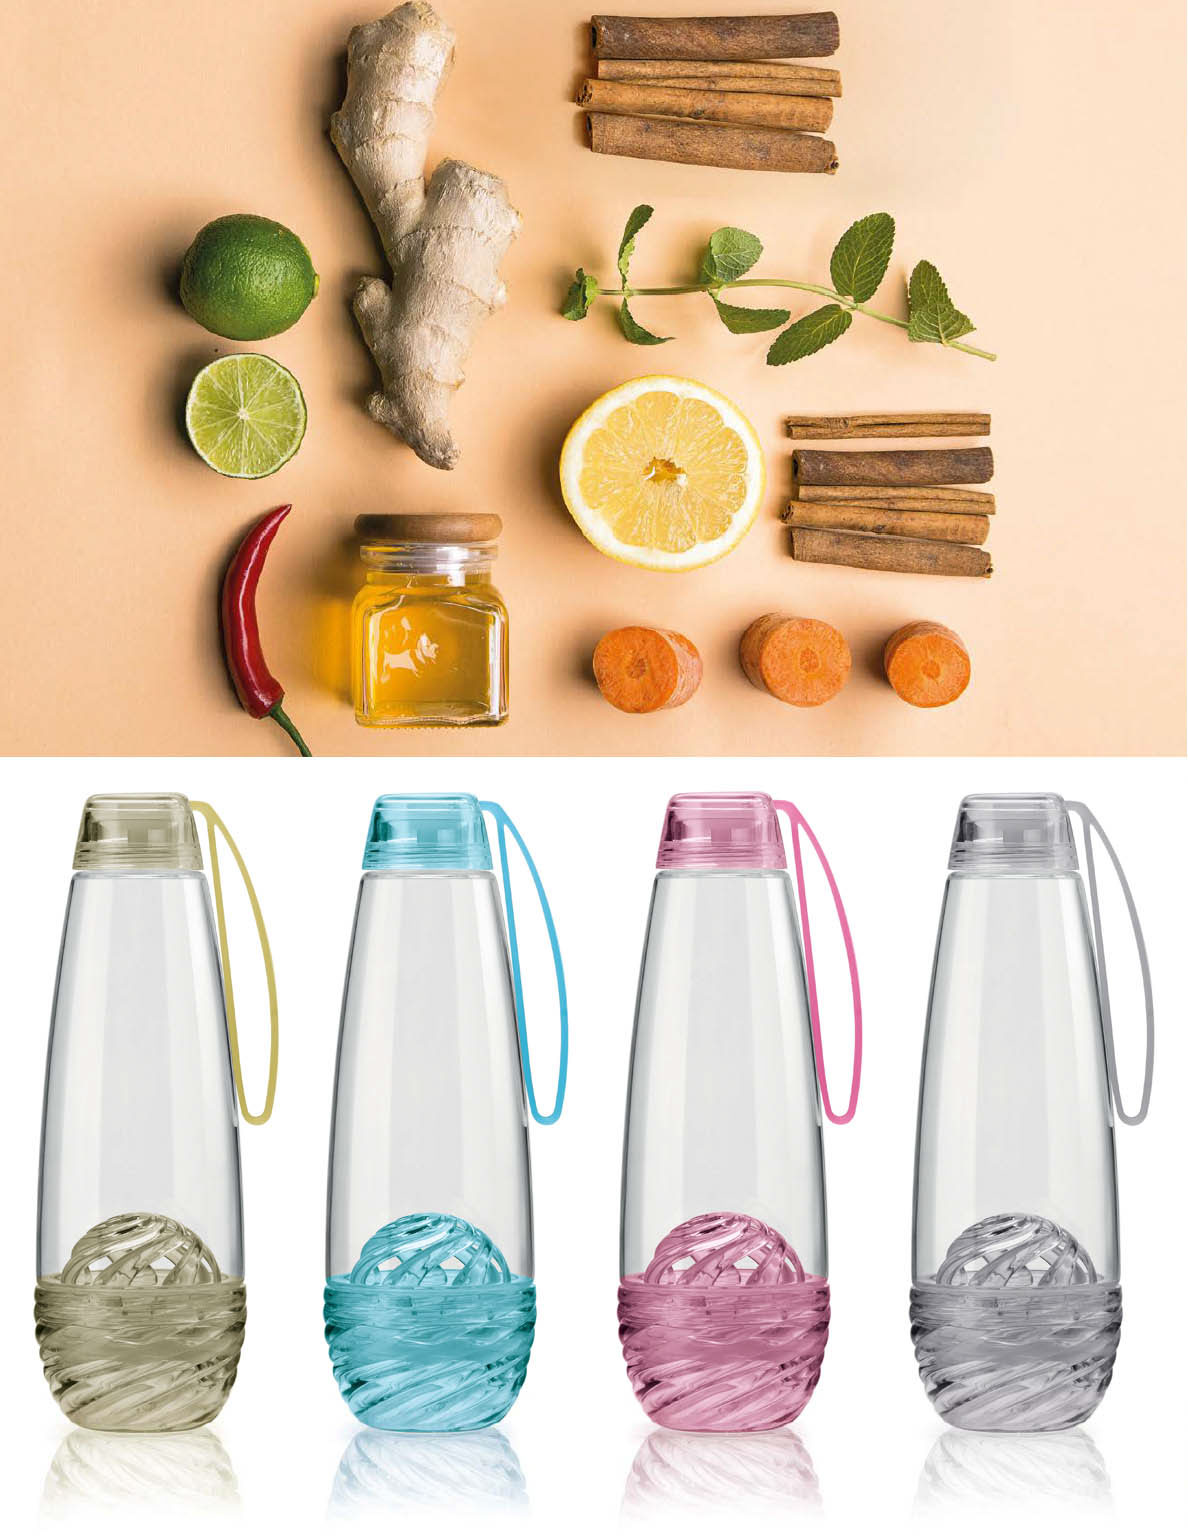 Feel On Behance New Tritan Infusd Water Bottle Is A With Fruit Infuser Made Of Bpa Free Material That Allows It To Look Like Precious Jewel